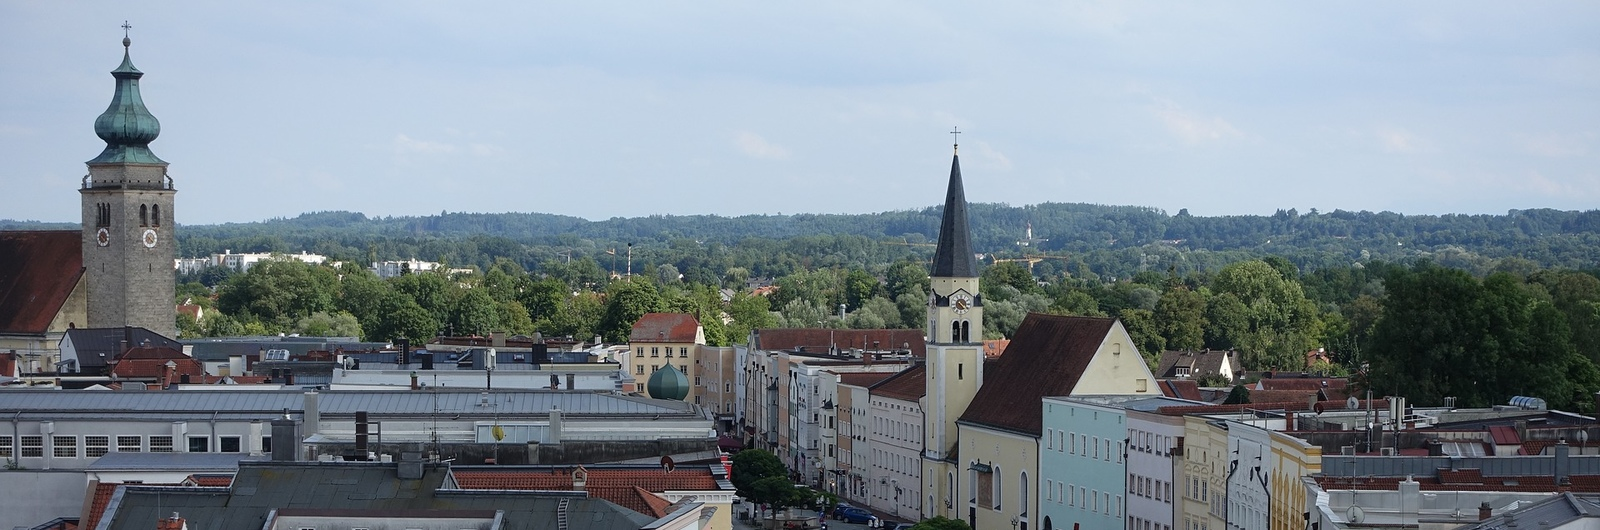 muehldorf city header